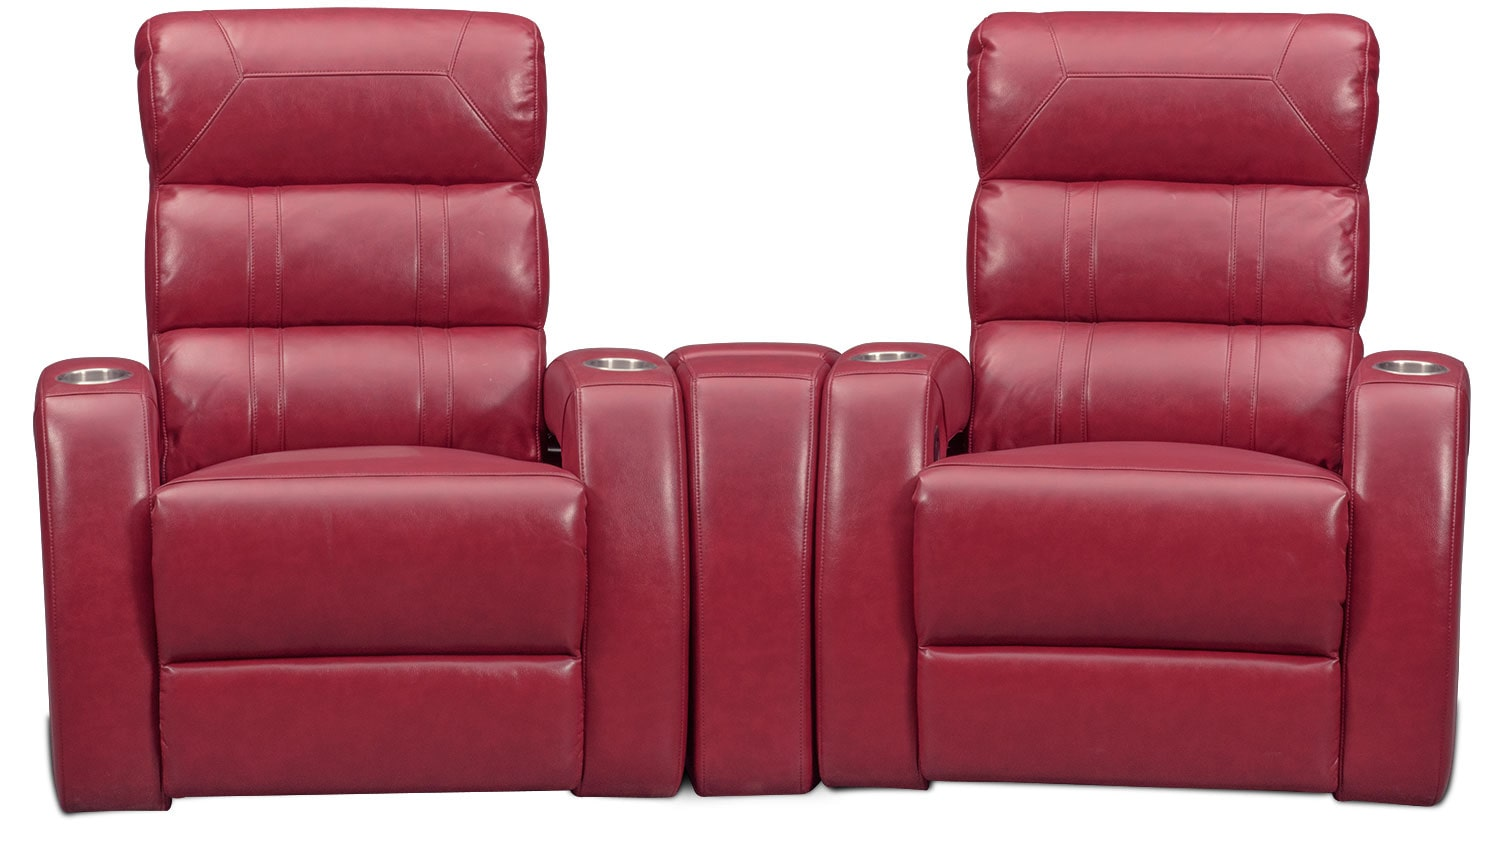 Bravo 3-Piece Power Reclining Home Theater Sectional - Red by One80  sc 1 st  Value City Furniture & Bravo 3-Piece Power Reclining Home Theater Sectional - Red | Value ... islam-shia.org